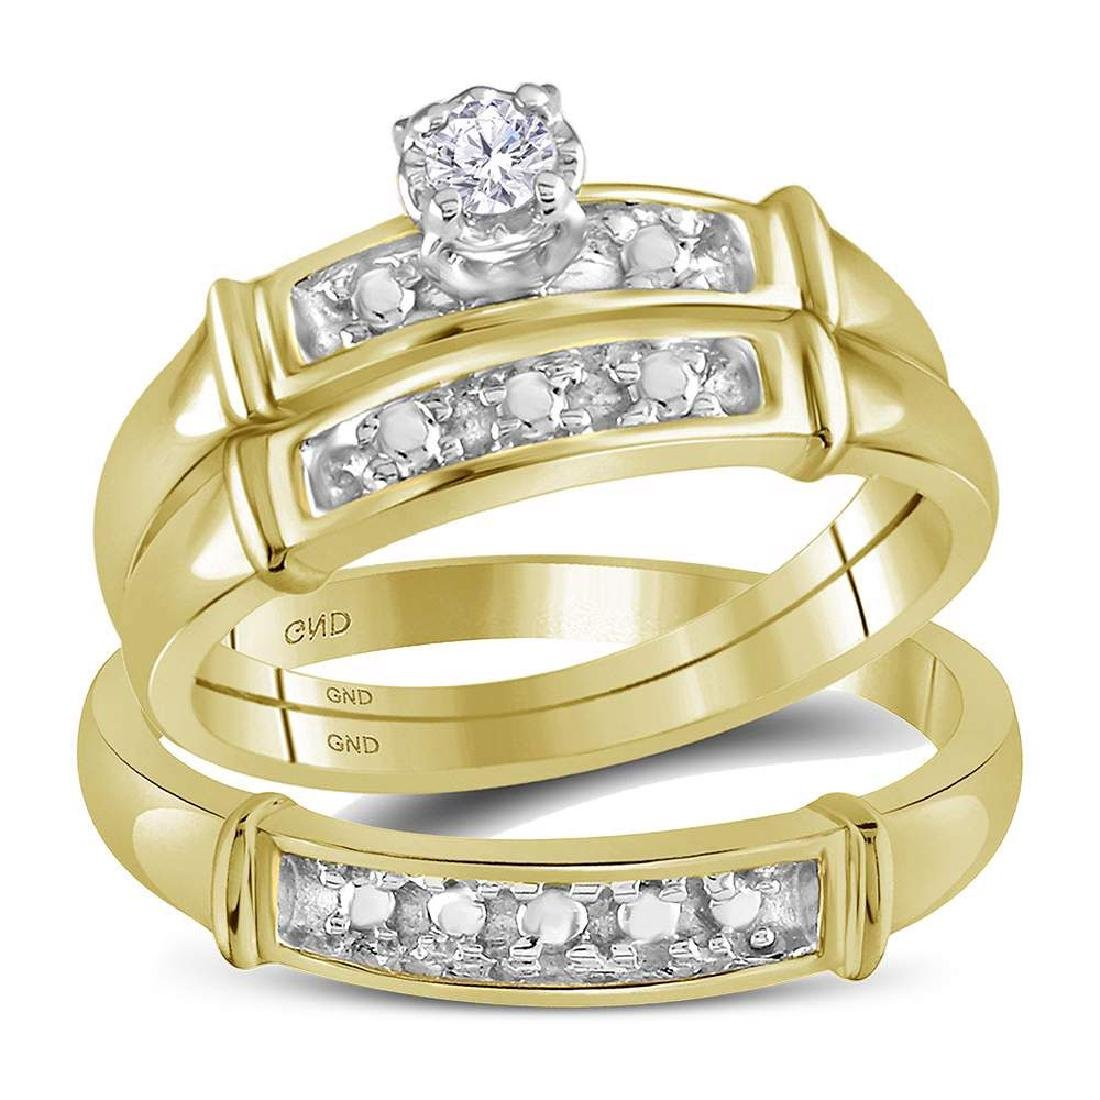 14k Yellow Gold His & Her Round Diamond Matching Bridal